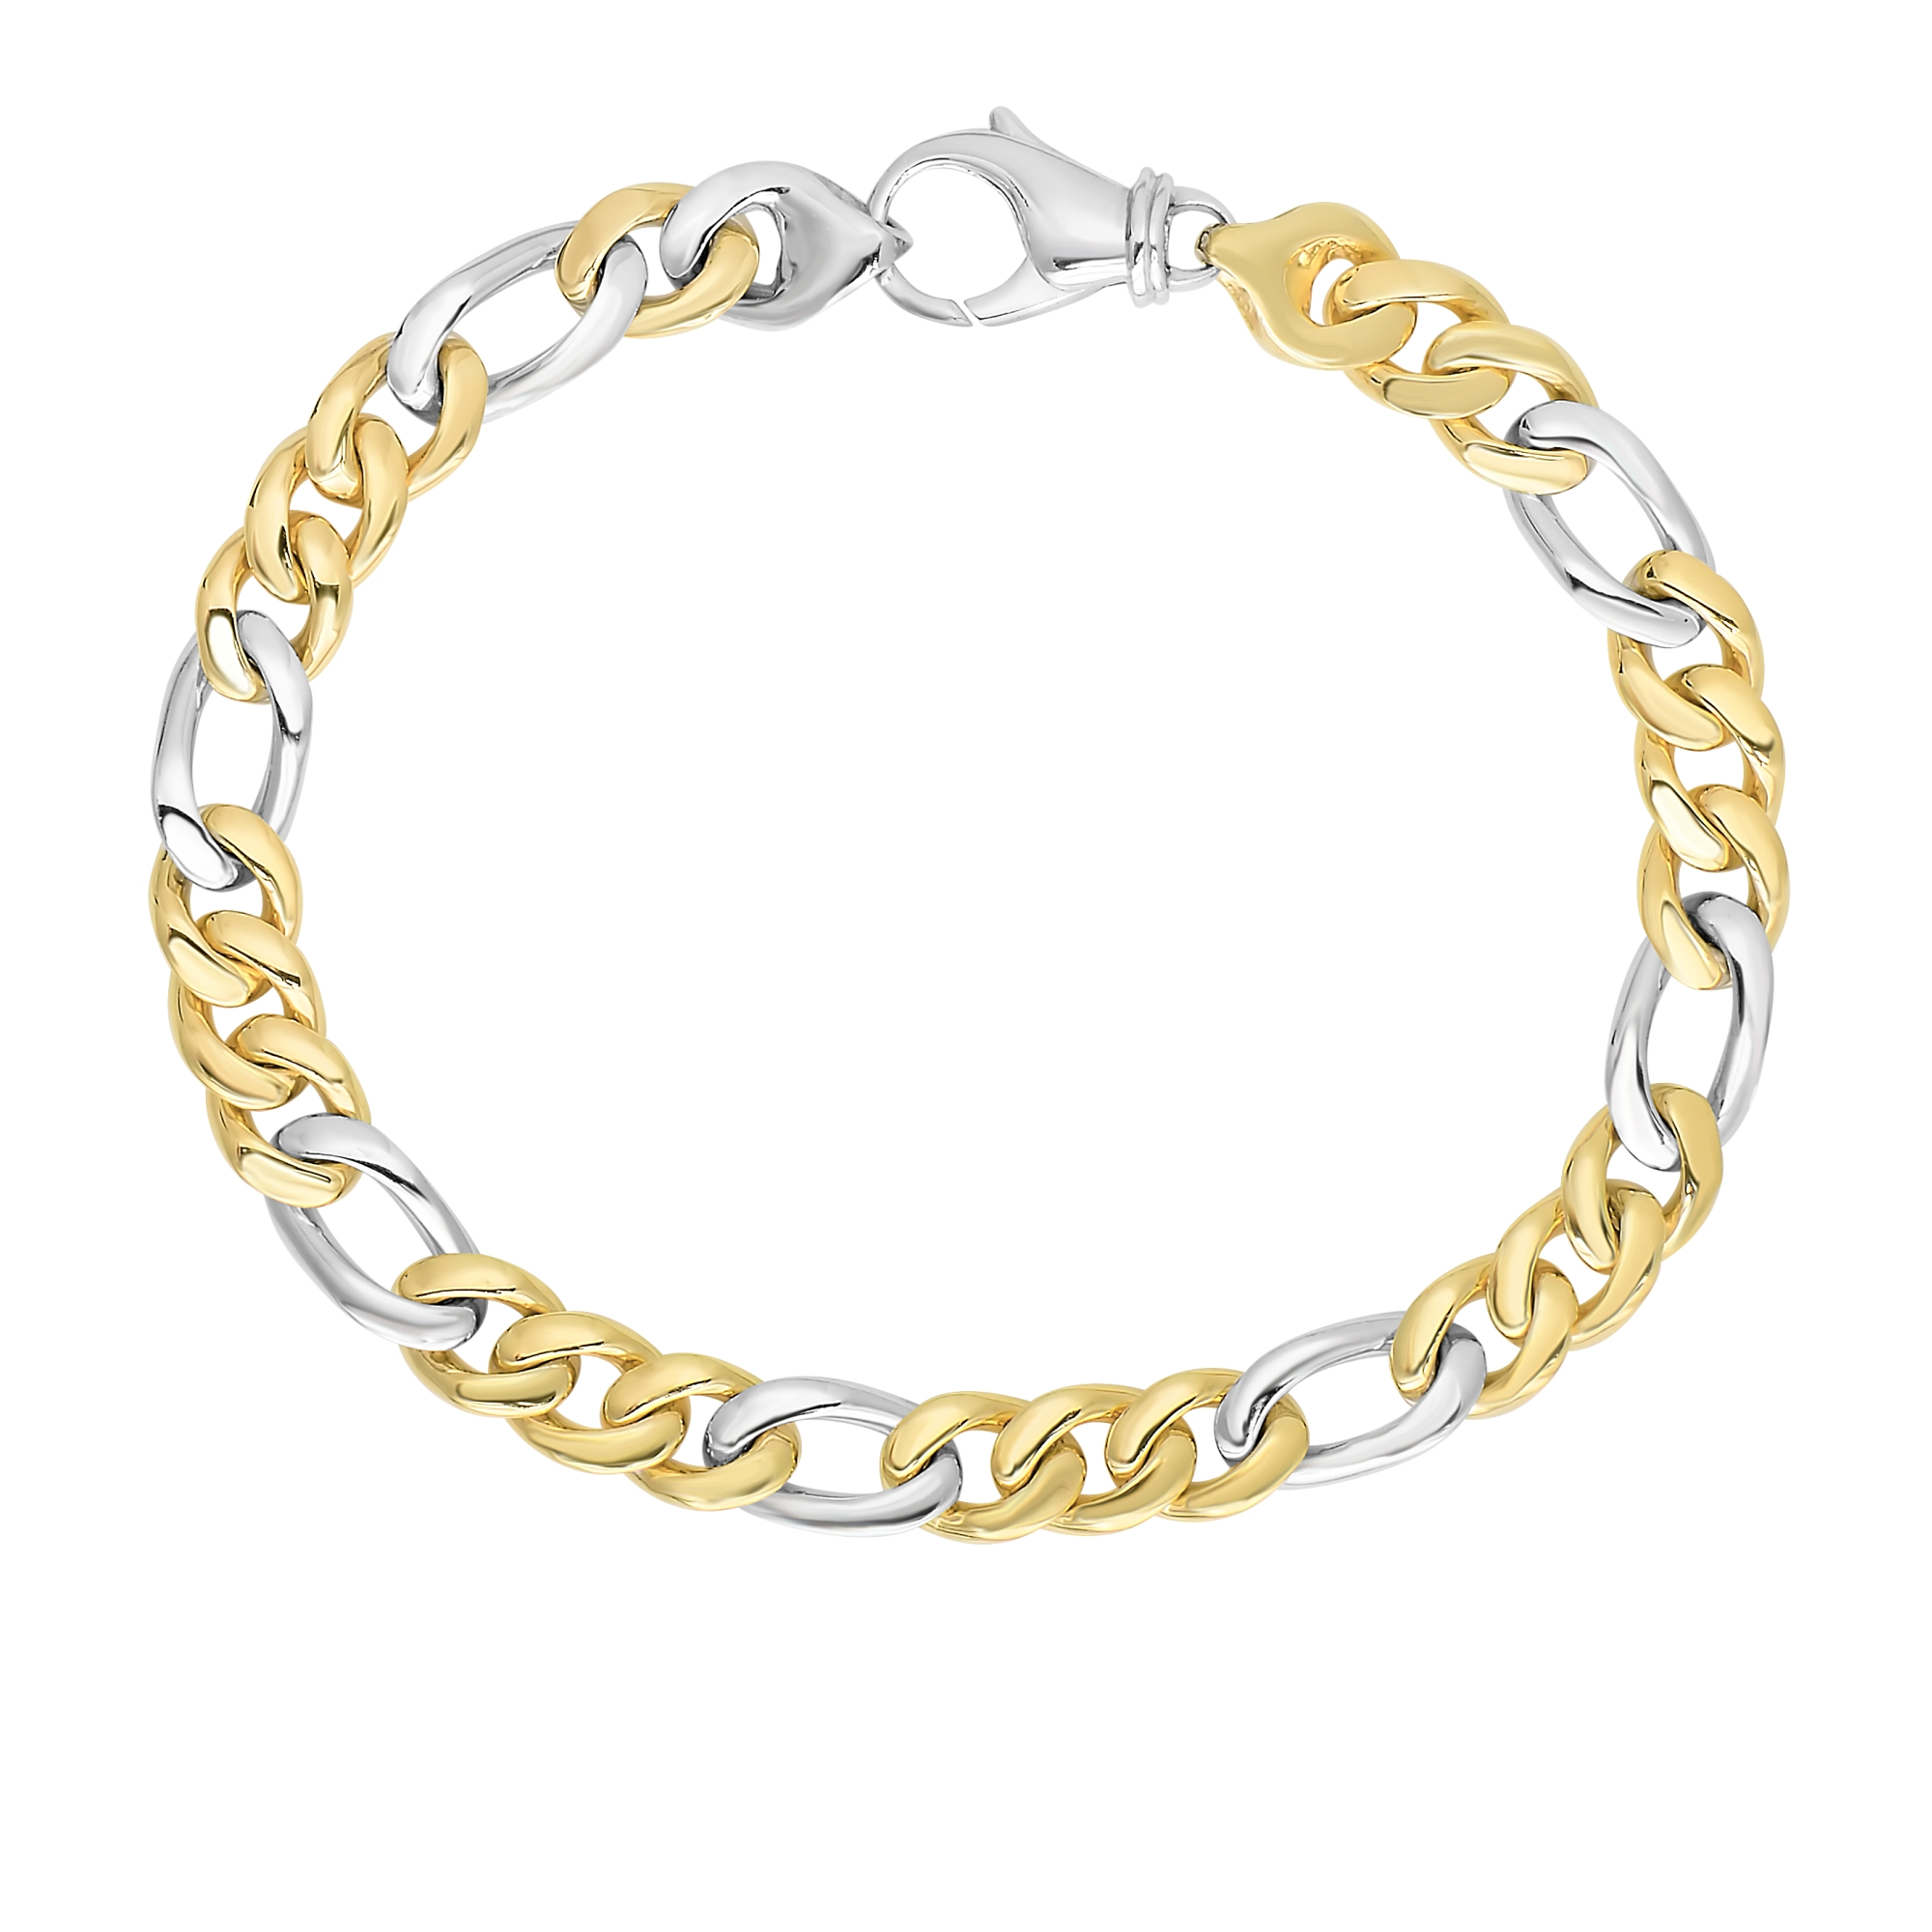 14kt 8.5 inches Yellow+White Gold 6mm Soft Faceted+Shiny Figaro Style Bracelet with Lobster Clasp (Actual sample in Silver )